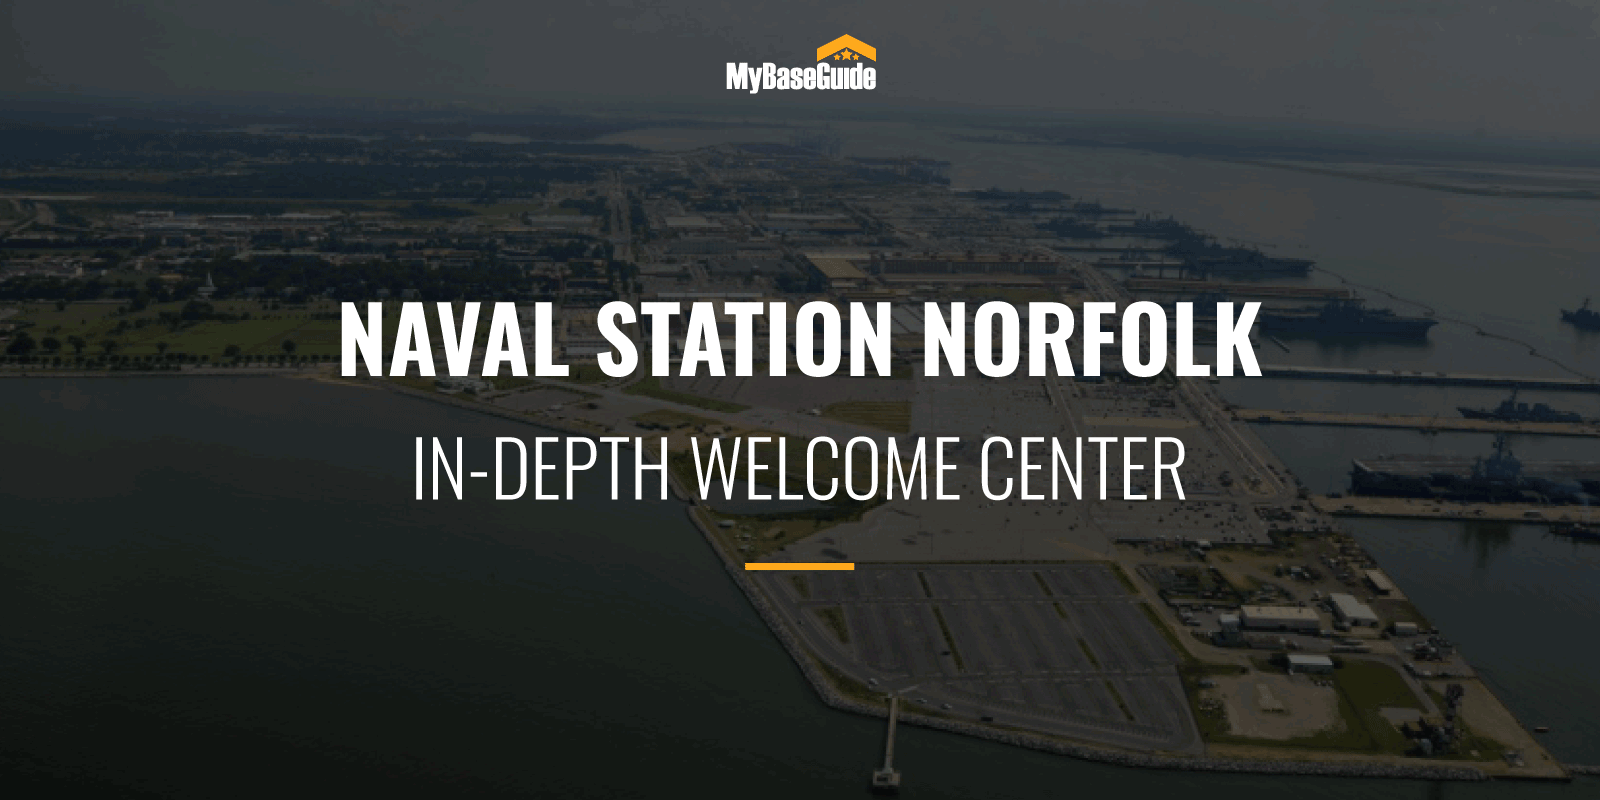 Naval Station Norfolk In-Depth Welcome Center